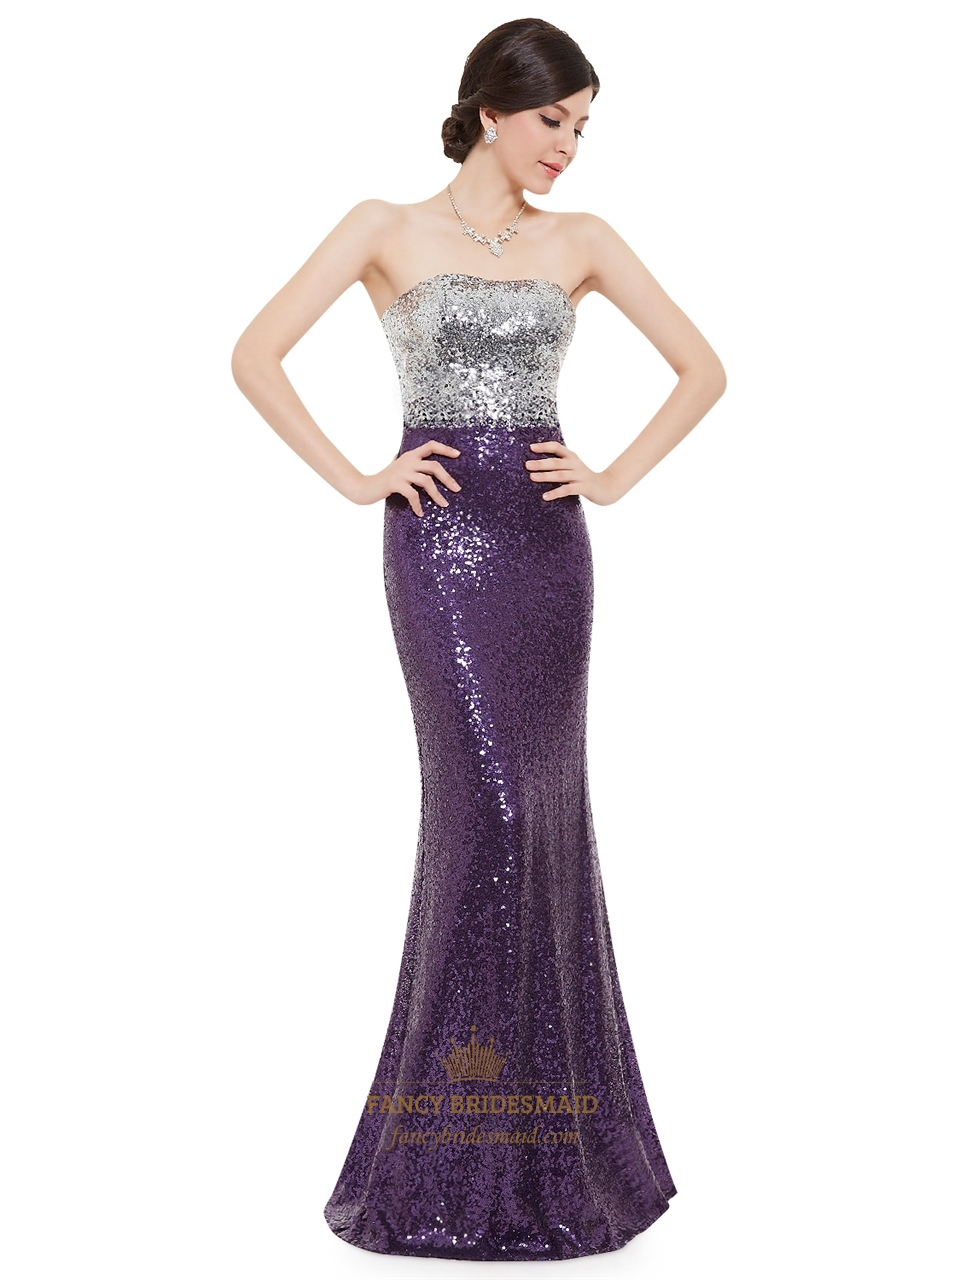 5a0d35d14ca0 Purple And Silver Strapless Mermaid Sequin Floor Length Prom Dress SKU  -NW1196